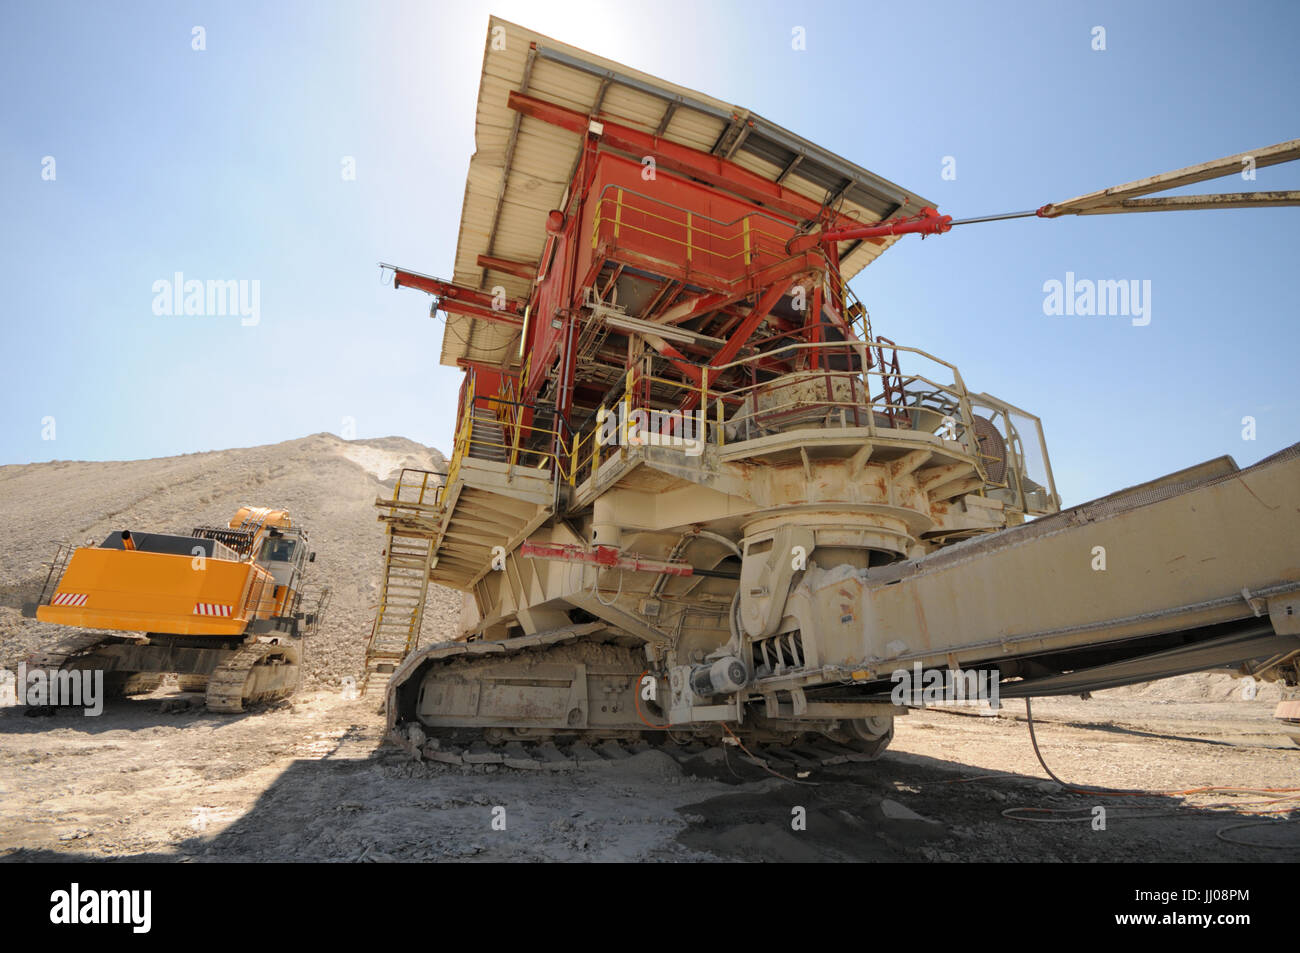 Stonecrusher and conveyor belt equipment in a chalk quarry. - Stock Image